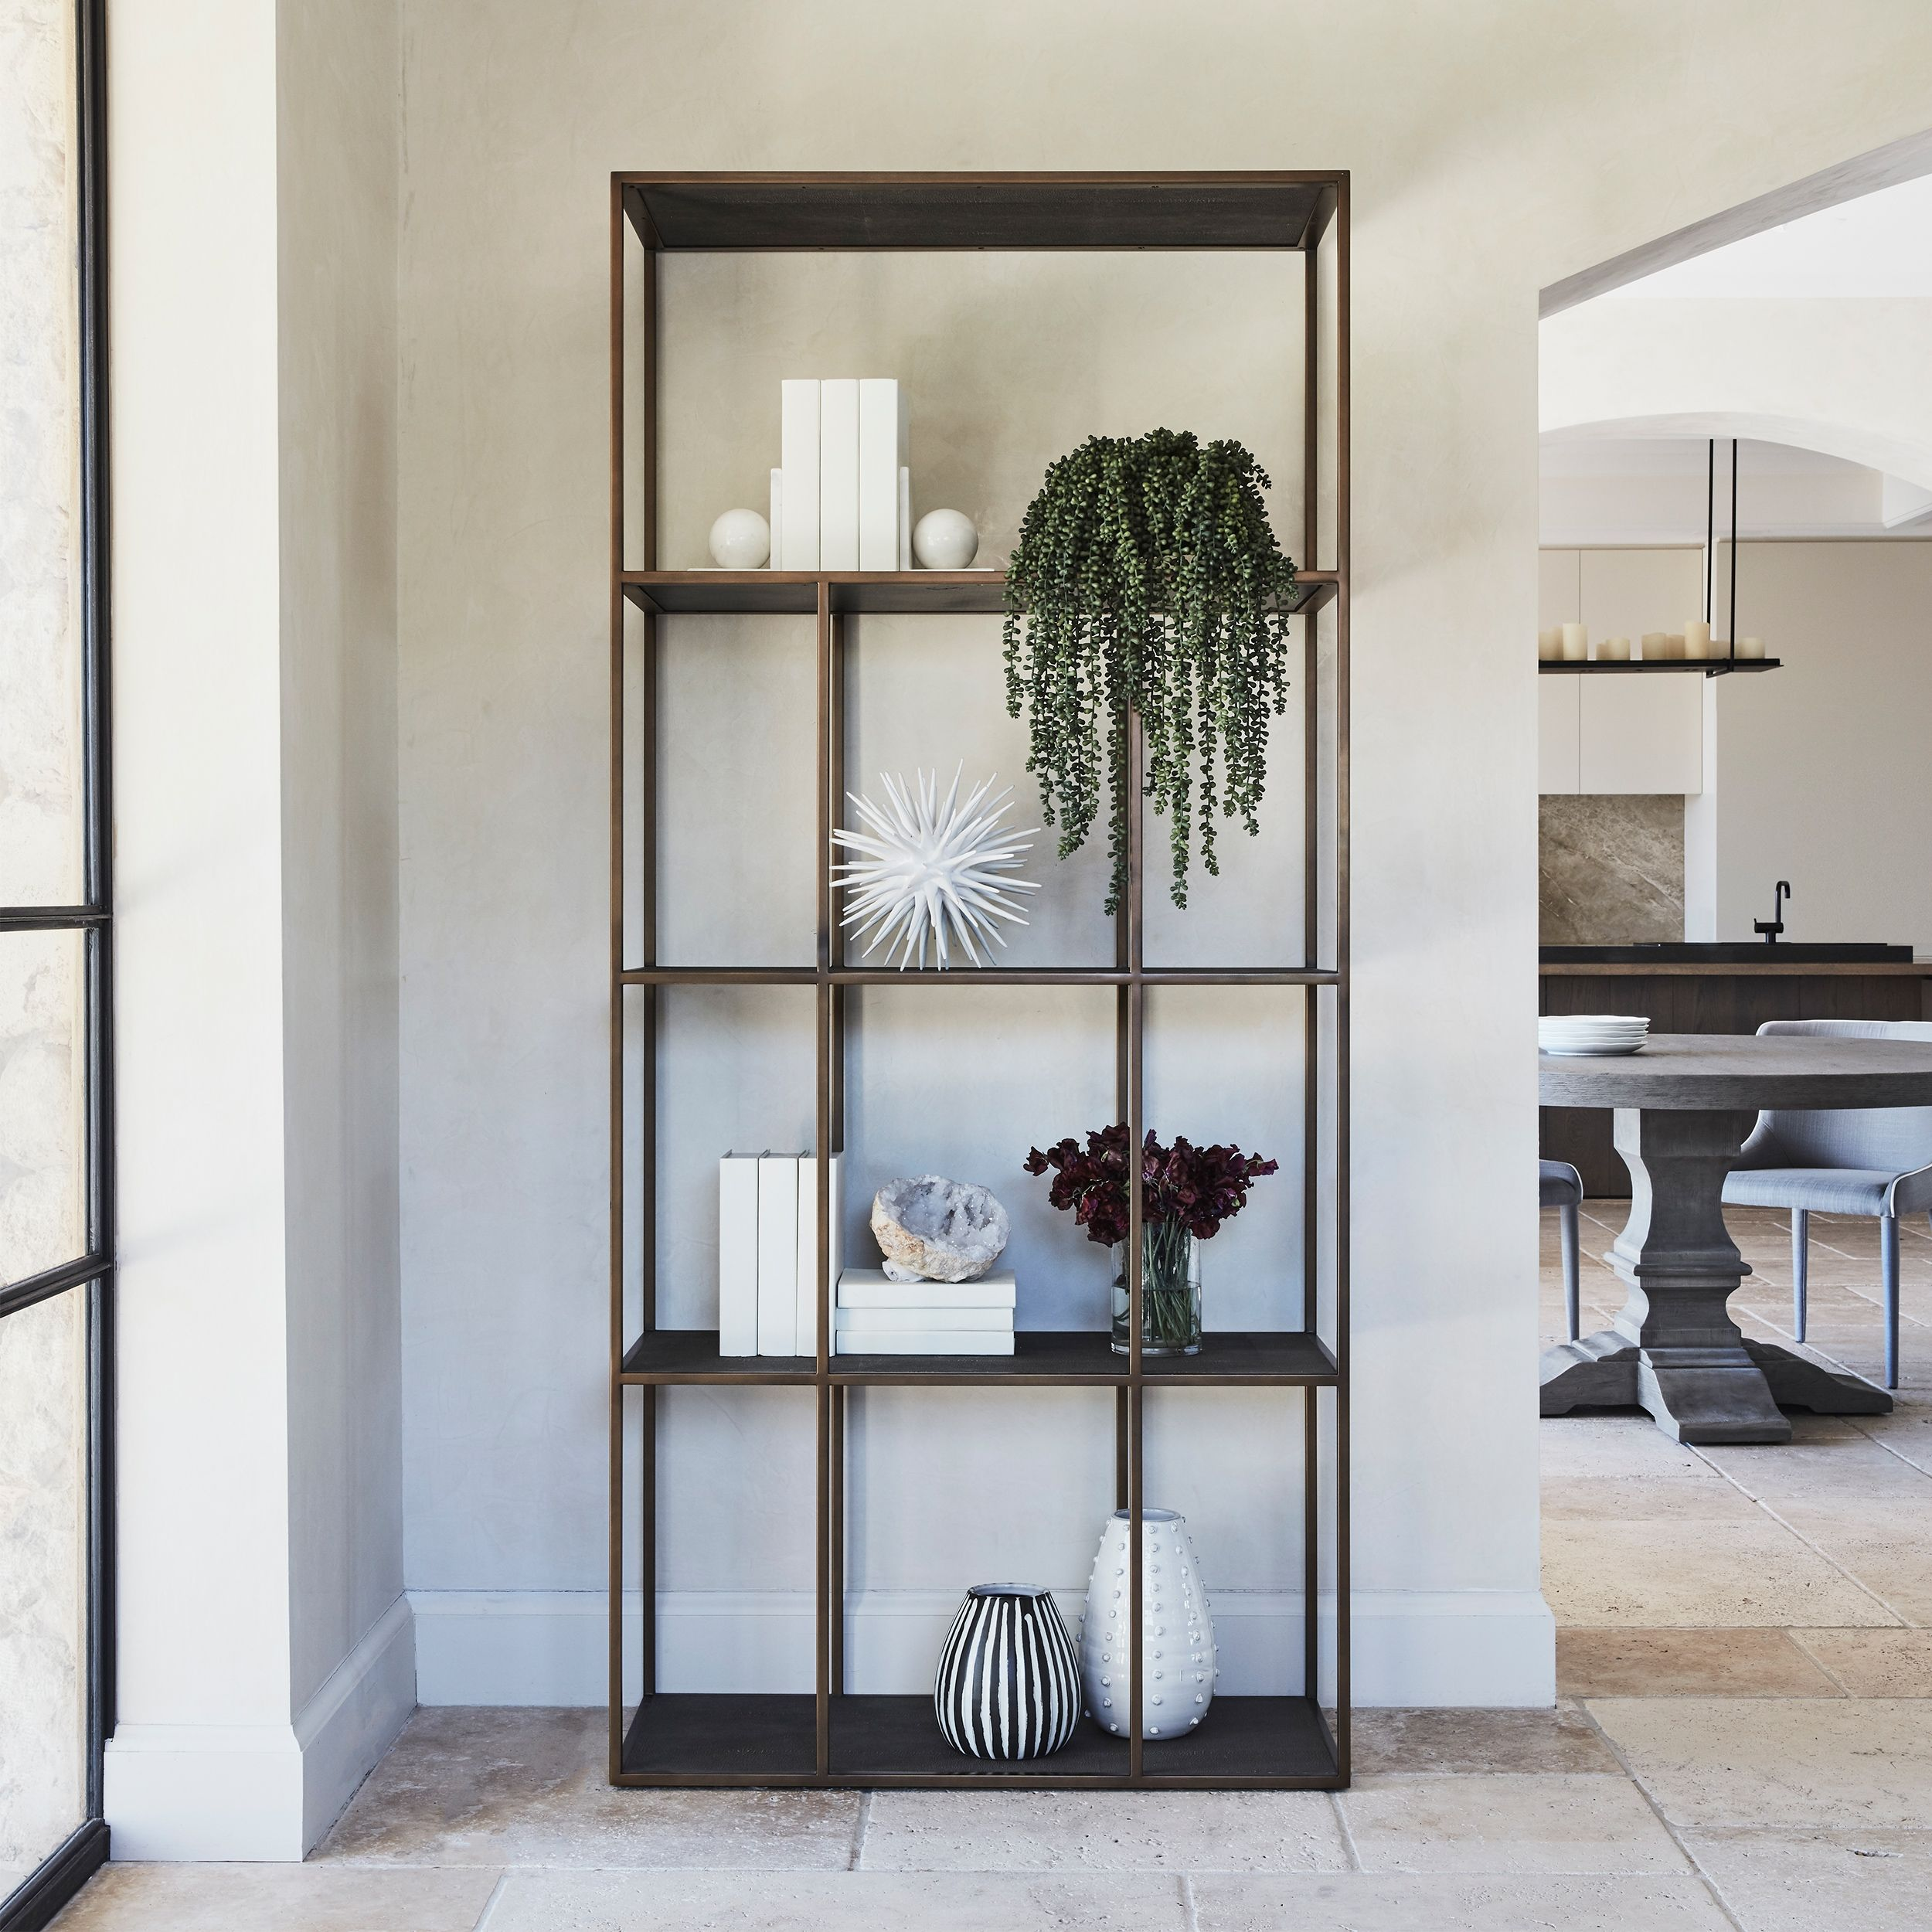 World Of Architecture 16 Simple Elegant And Affordable: Inspired By 1930s Paris, The Knox Bookshelf Is A